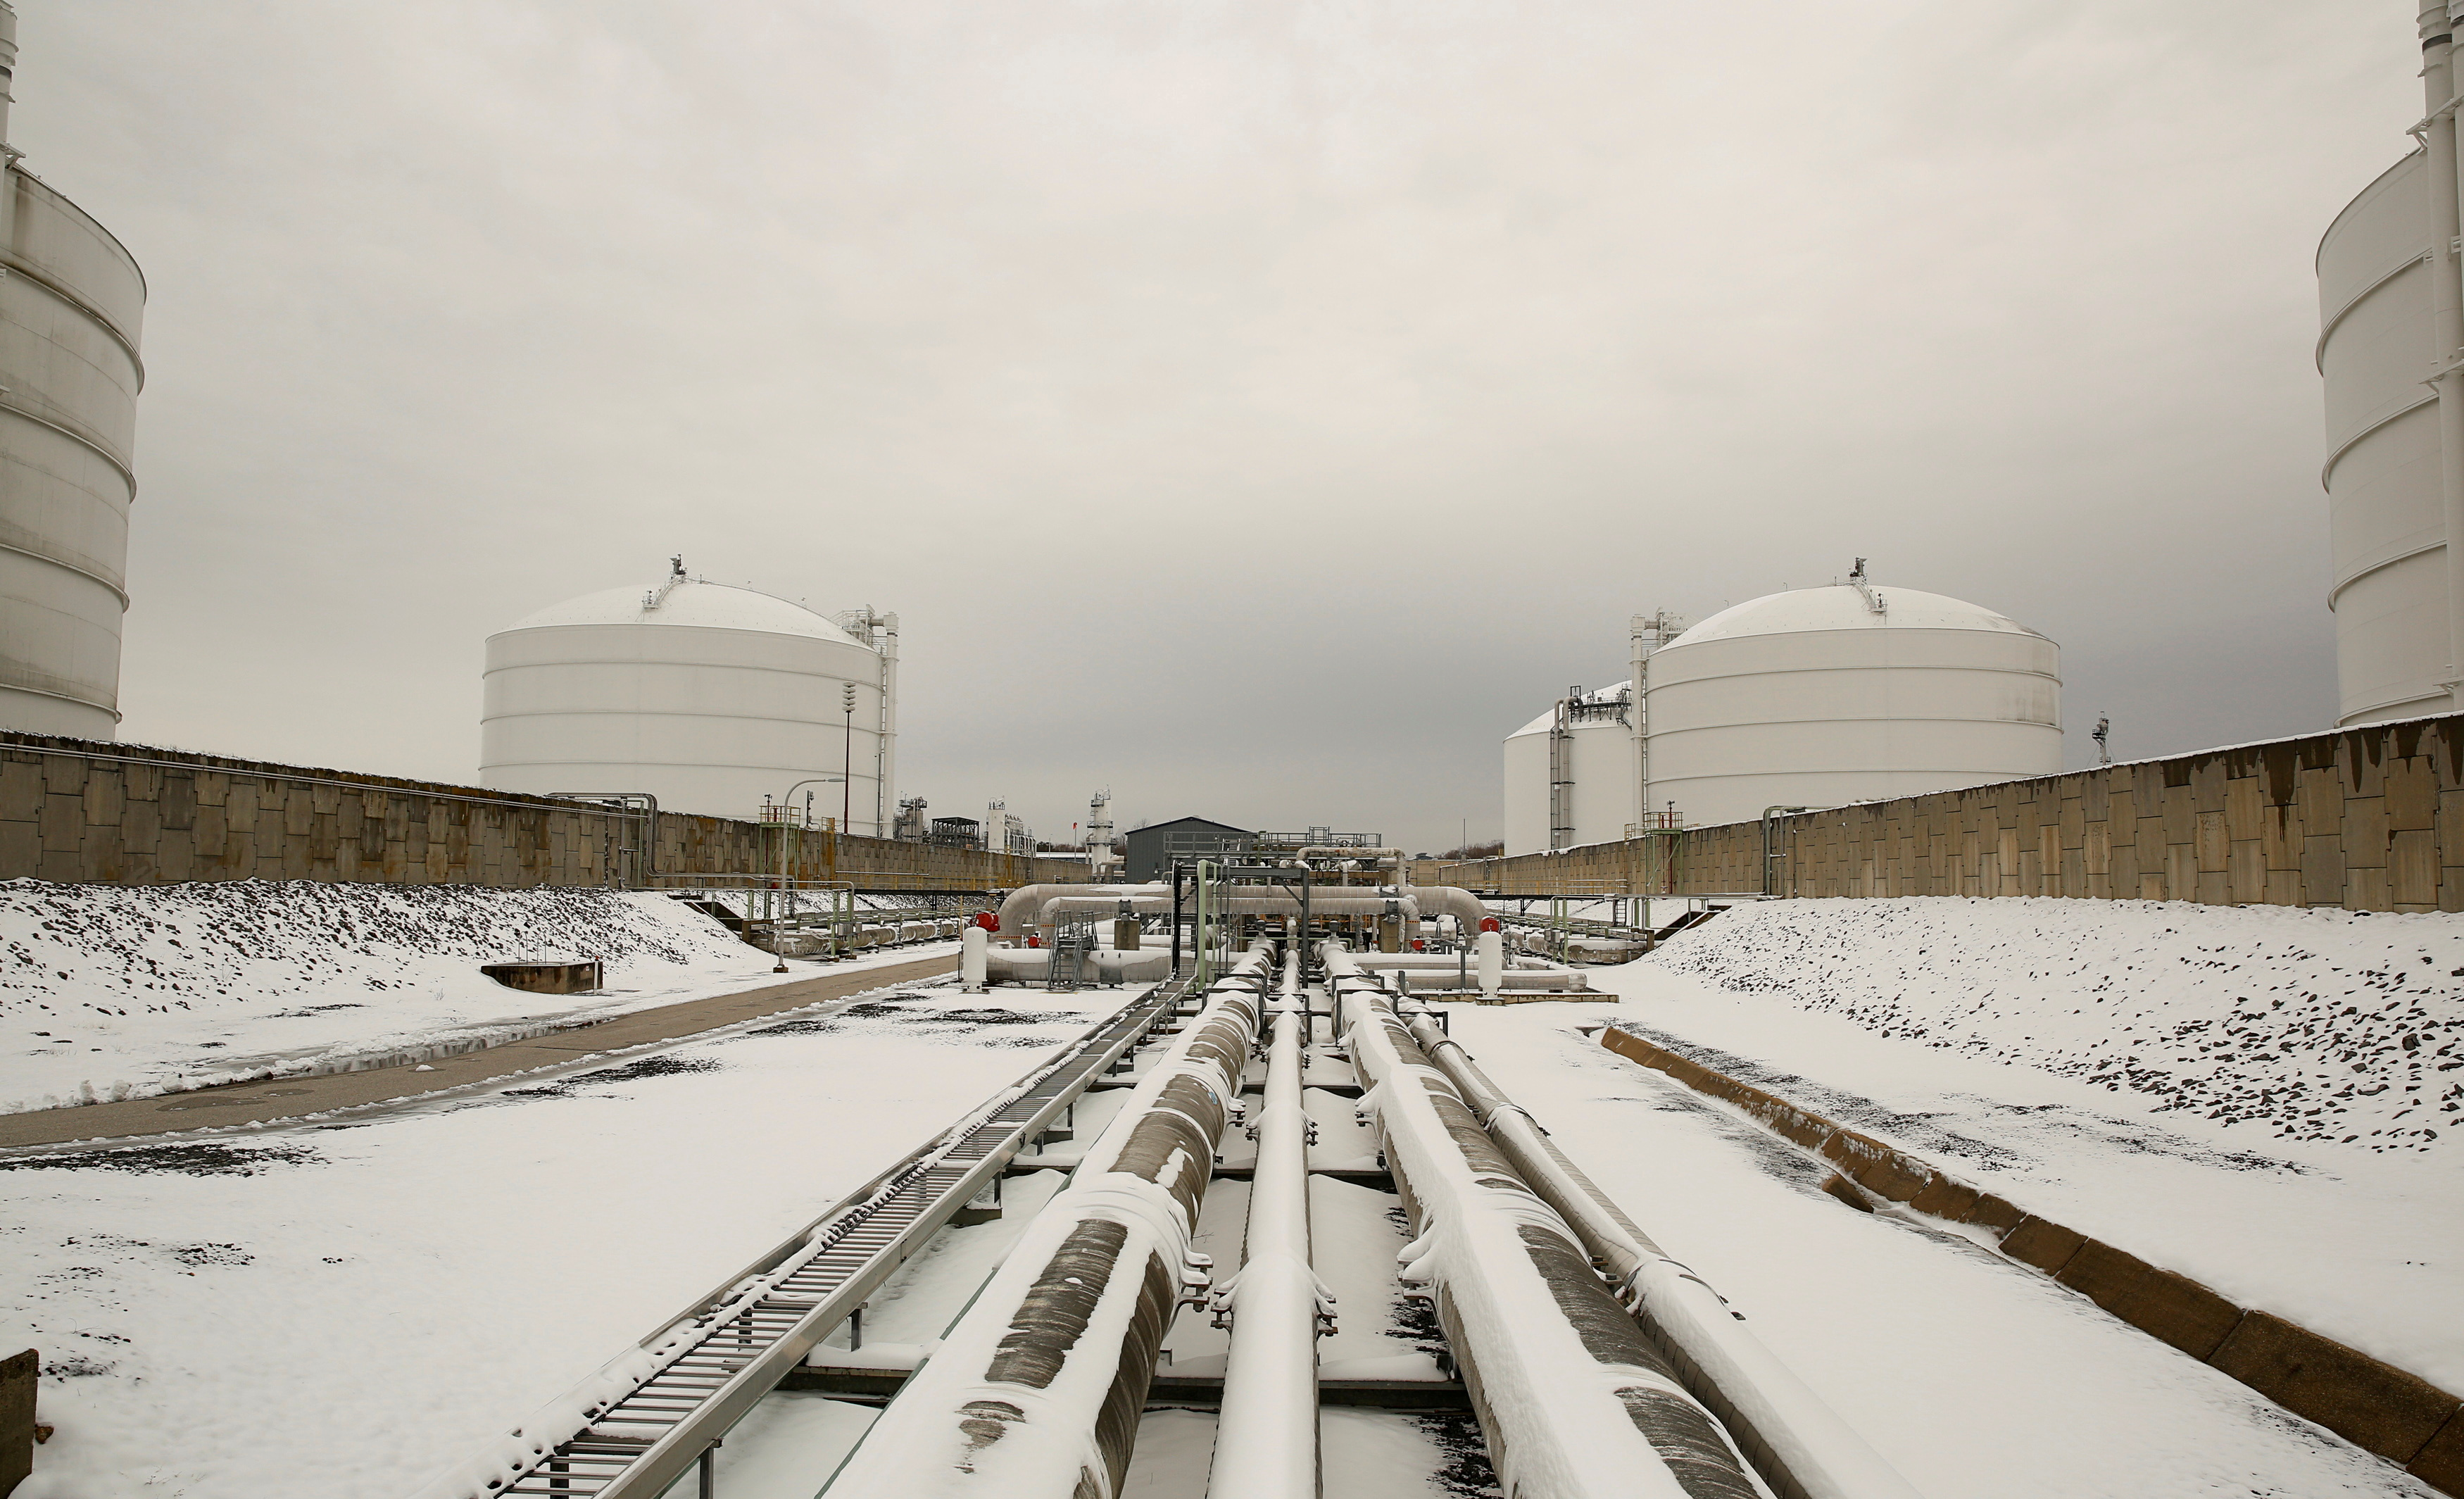 Snow covered transfer lines leading to storage tanks at the Dominion Cove Point Liquefied Natural Gas (LNG) terminal in Lusby, Maryland, March 18, 2014. REUTERS/Gary Cameron